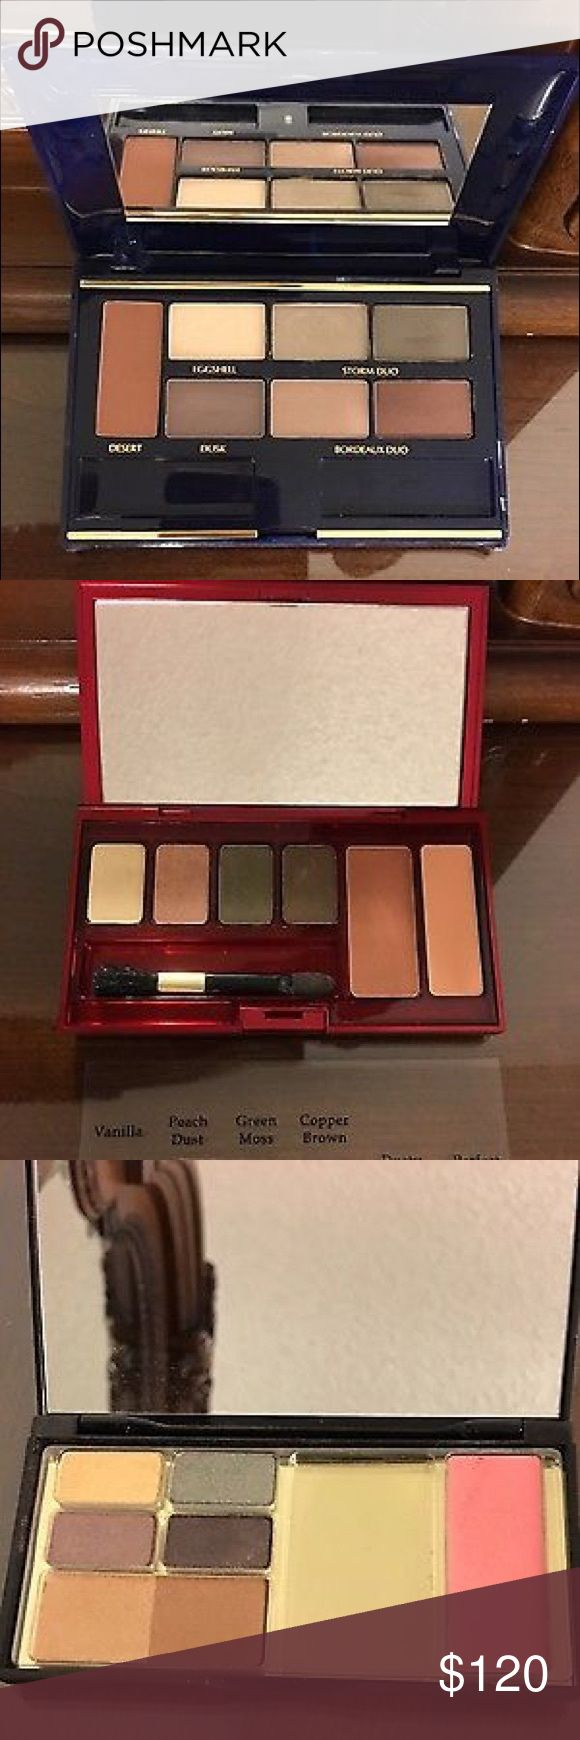 (6) HI END MAKEUP FULL SIZES ARDEN MAC LAUDER NEW LOT OF 6 NEW HIGH END FULL SIZE MAKEUP PALETTES SOME NEW, SOME TESTED. SEE PHOTOS & DESCRIPTION  2- ELIZABETH ARDEN MULTIPLE COLOR EYESHADOW PALETTES  1- ELIZABETH ARDEN SINGLE COLOR GOLD SHIMMER EYE POWDER 1- ESTEE LAUDER MULTI COLOR EYESHADOW PALETTE,  ONE OF THE COLORS TESTED ONCE 1- MAC NEW FORM PRESSED POWDER FACE BLUSH/BRONZER 1-MAC QUAD EYESHADOW PALETTE  ONE COLOR TESTED ONCE 1 COLOR BROKEN A LITTLE  AS SHOWN IN PHOTOS CASES HAVE…